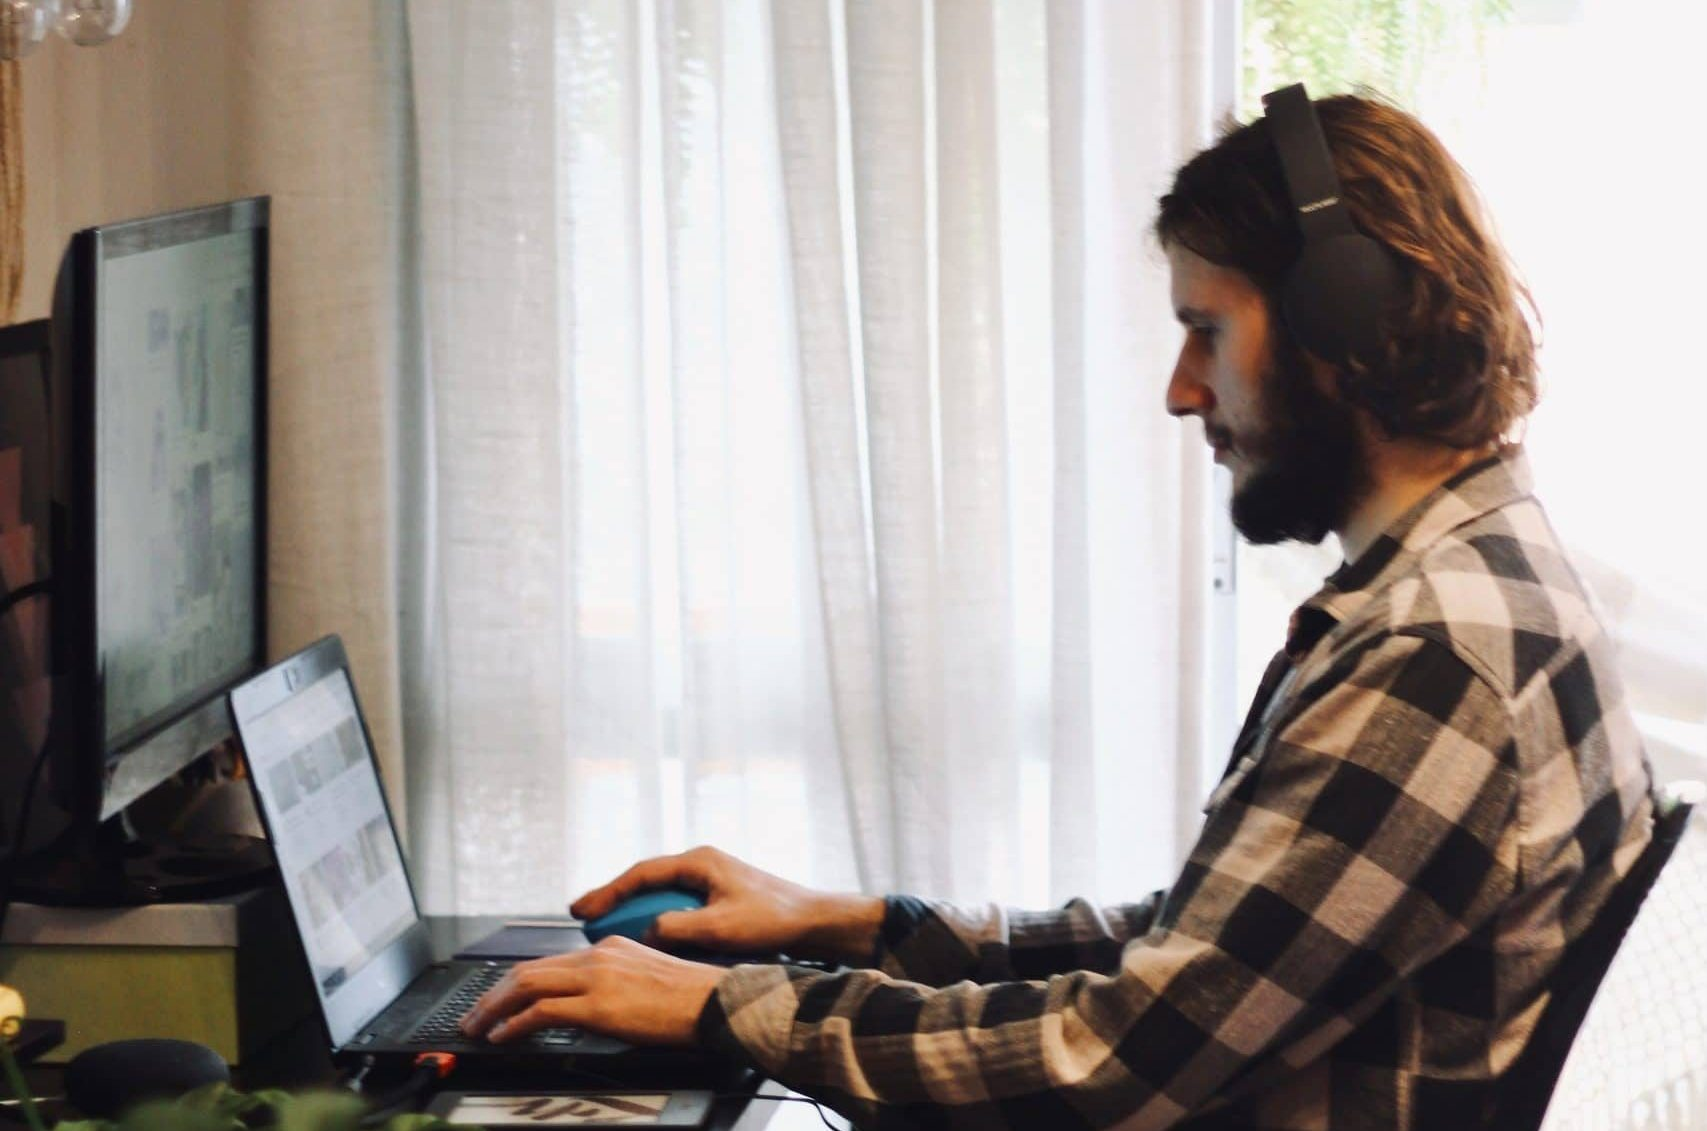 A work from home contact center agent in a plaid shirt sits at a desk in front of a computer wearing a headset.